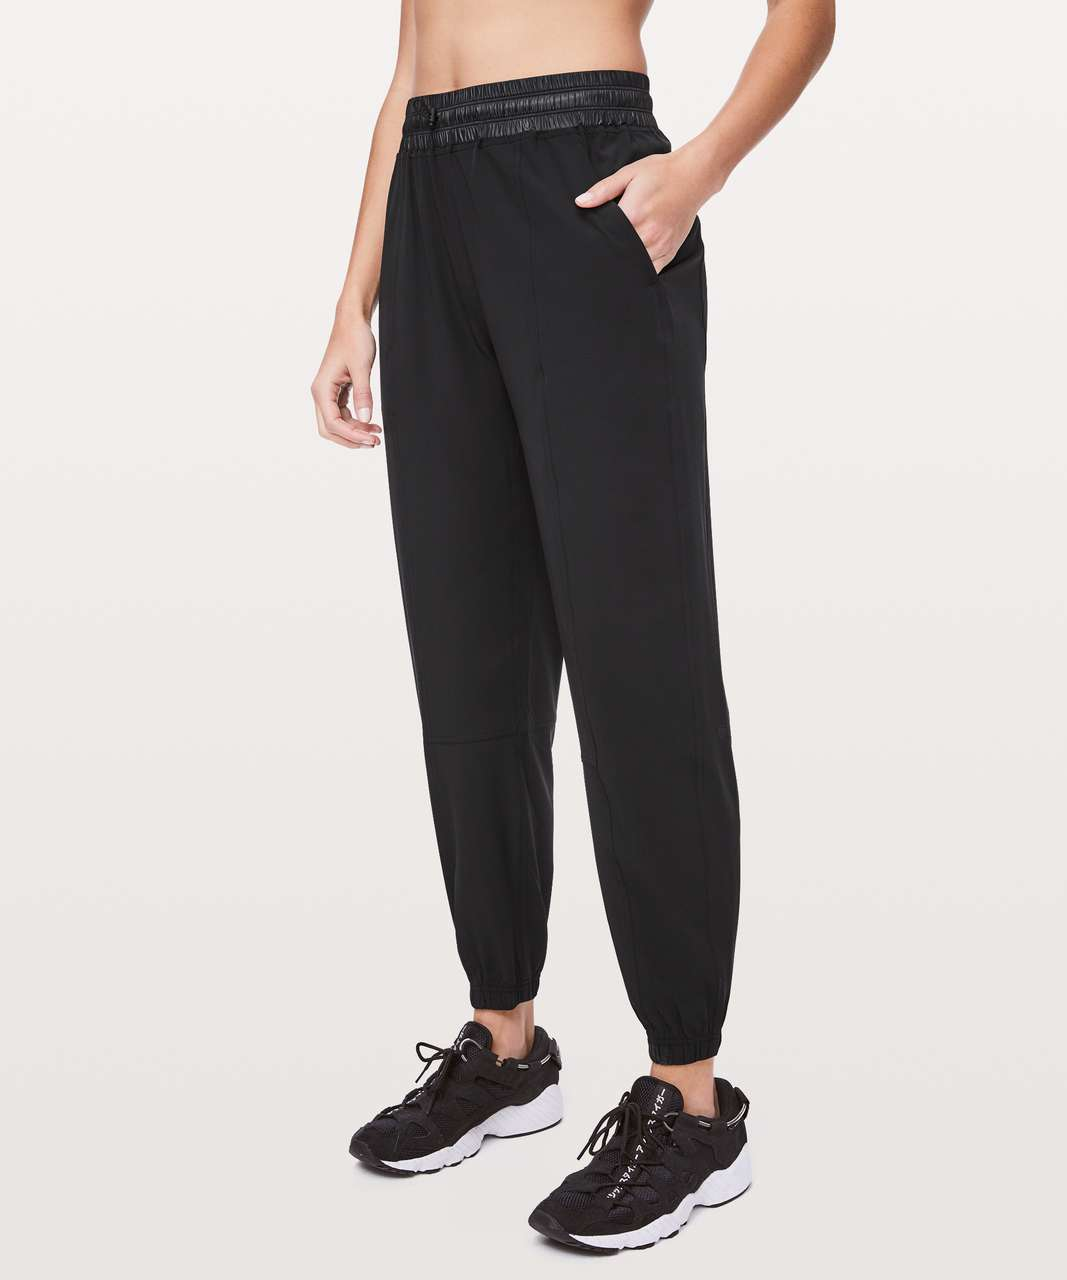 be9604c46 Lululemon All Roads Track Pant *27